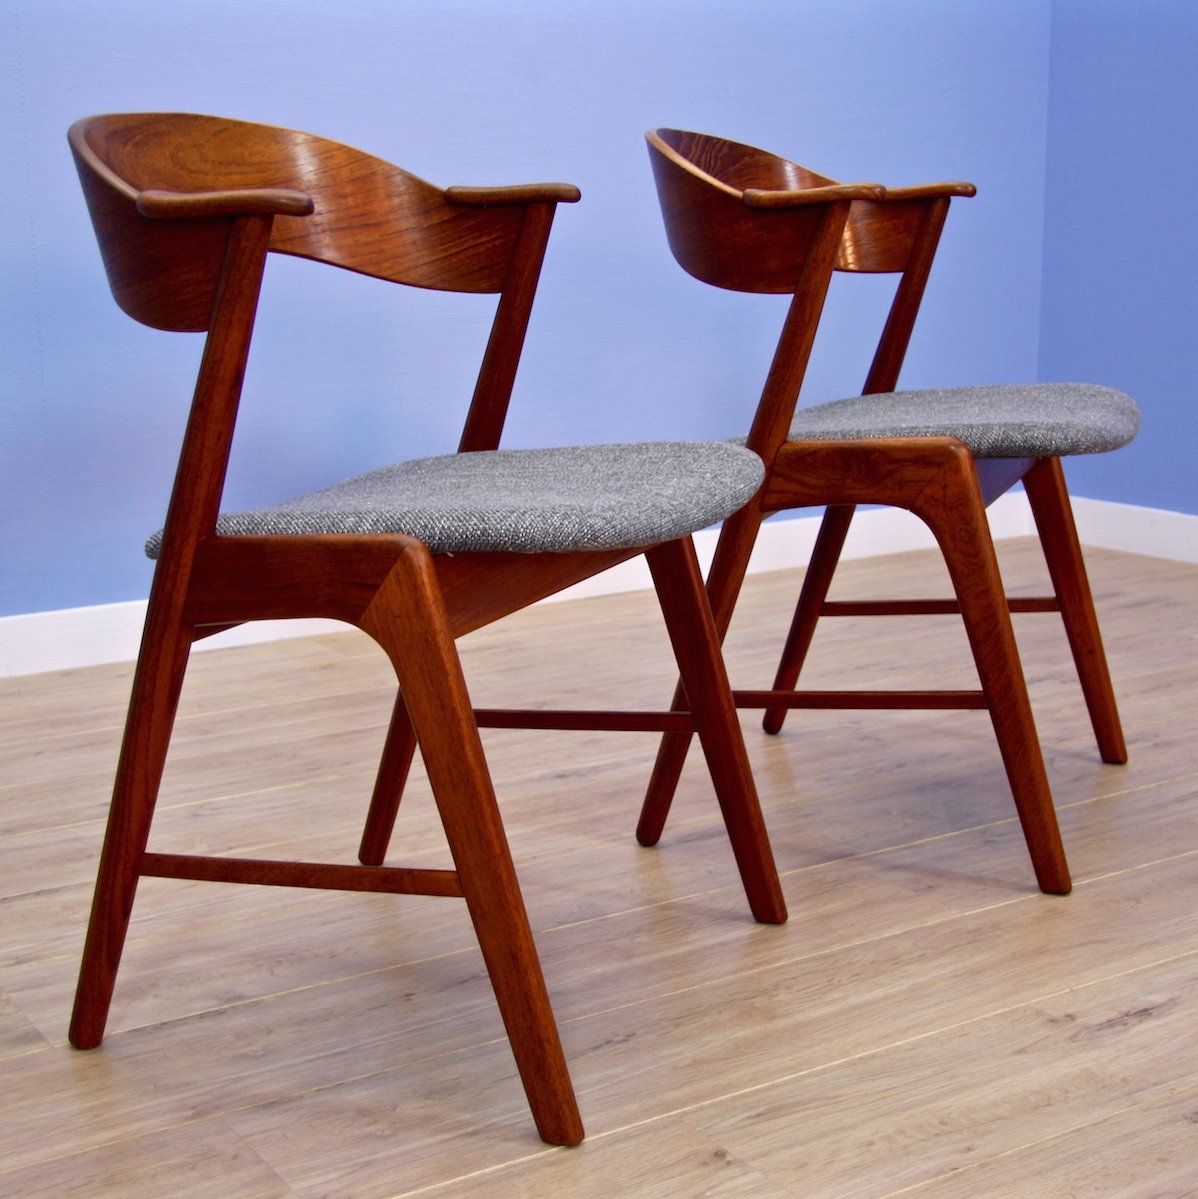 Pair Of Dinner Chairs By Kai Kristiansen For Korup Stolefabrik 1950s 65426